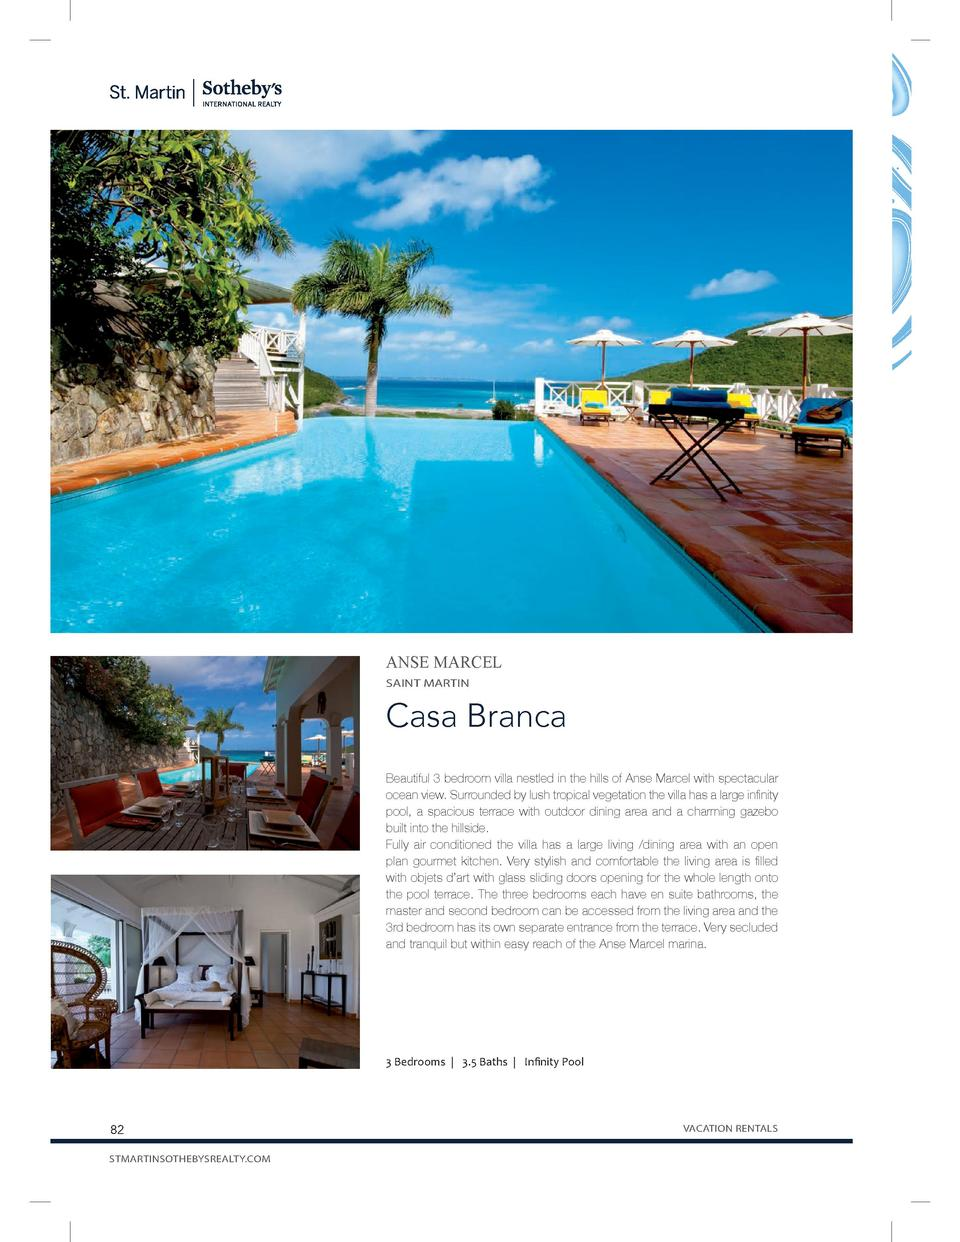 ANSE MARCEL SAINT MARTIN  Casa Branca Beautiful 3 bedroom villa nestled in the hills of Anse Marcel with spectacular ocean...